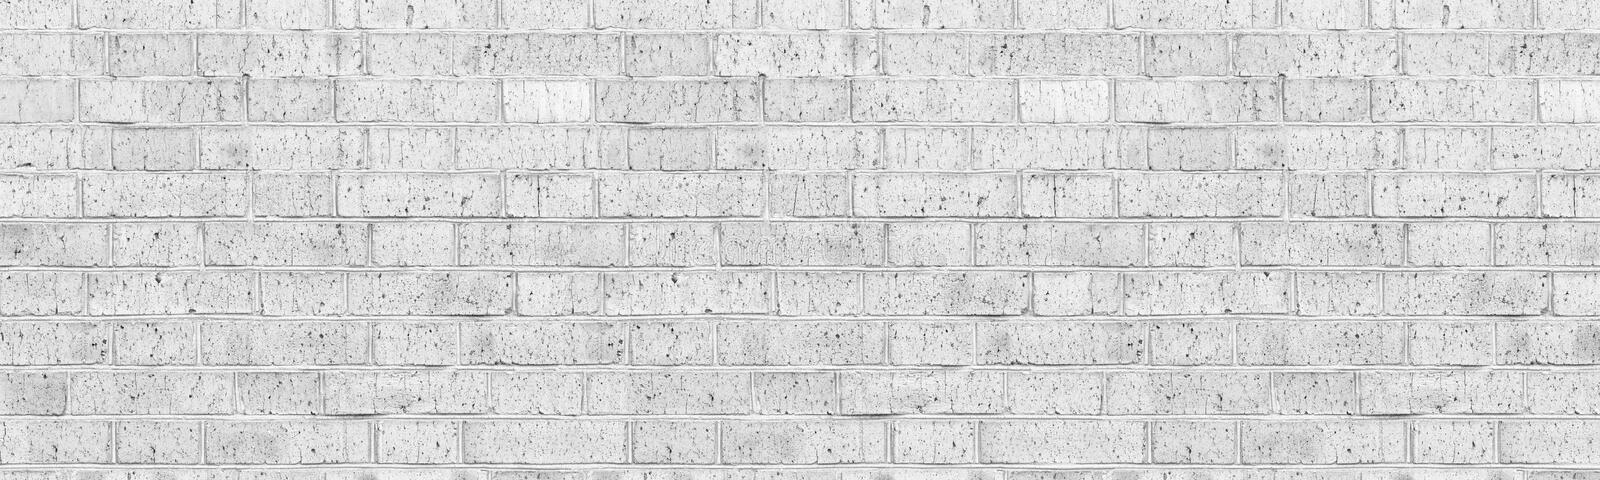 Wide white brick wall texture. Whitewashed shabby brickwork. High key faded vintage background stock photos